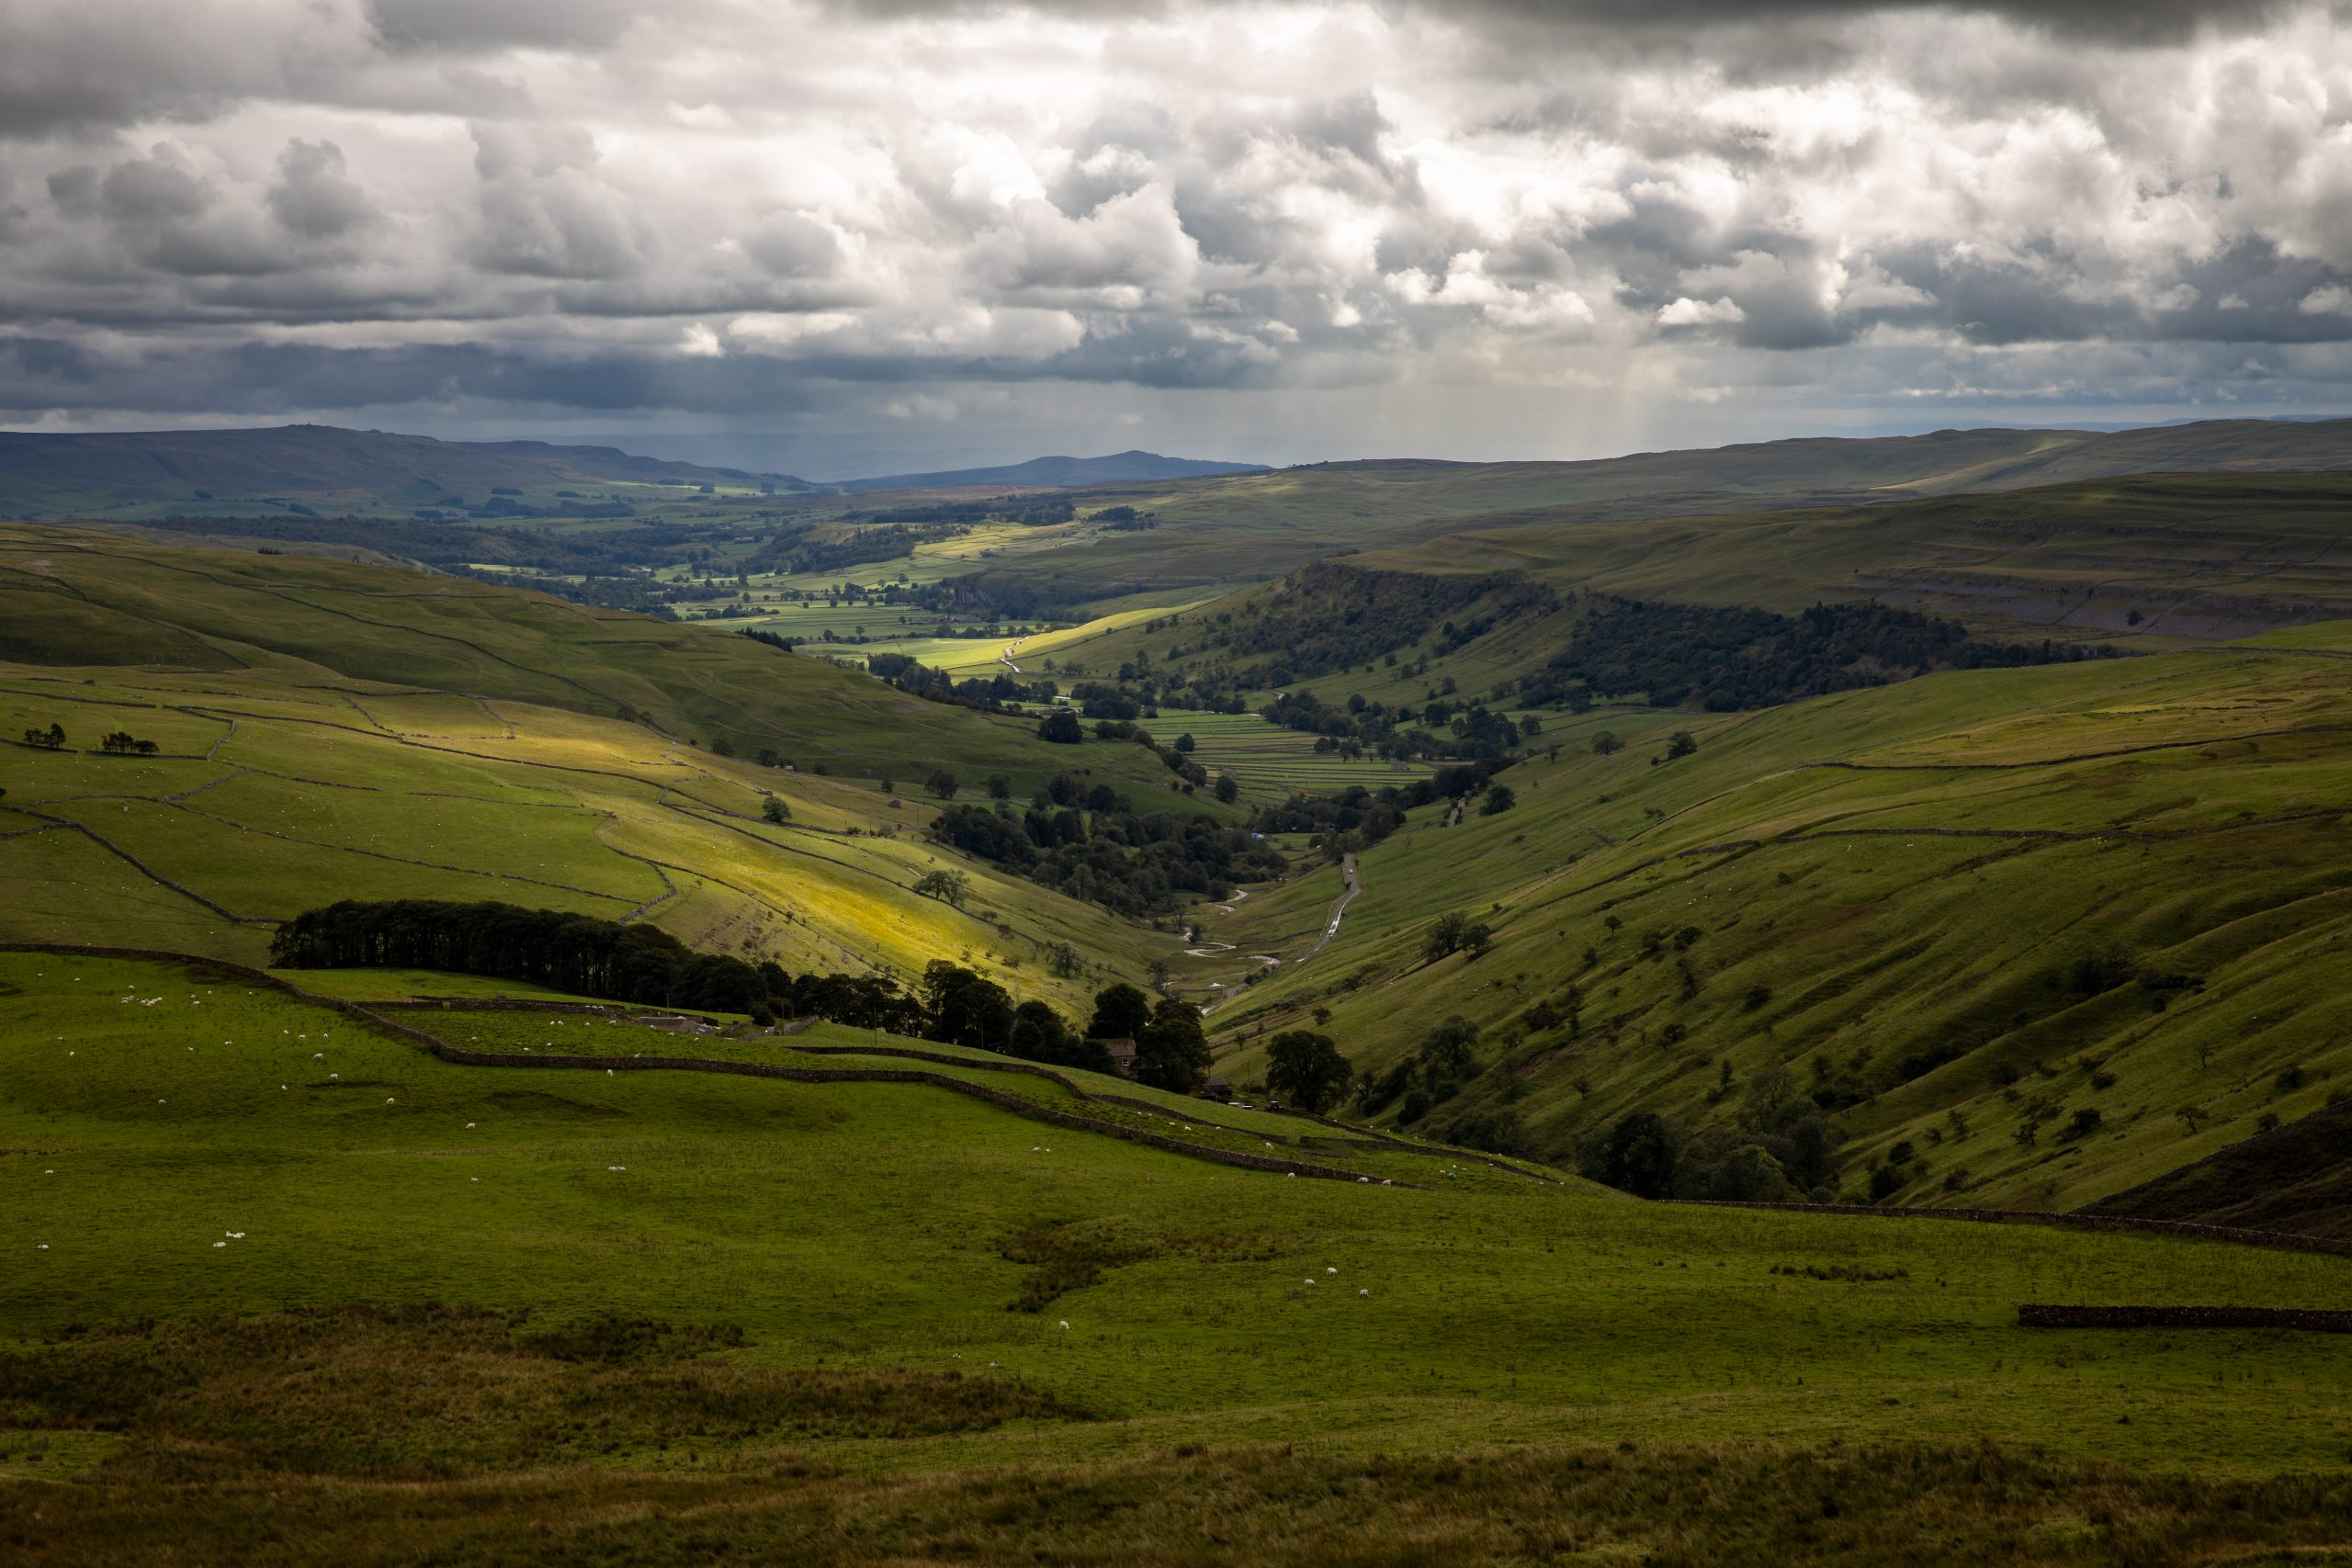 The view over Wharfedale near Kettelwell seen on the descent from Great Whernside in the Yorkshire Dales